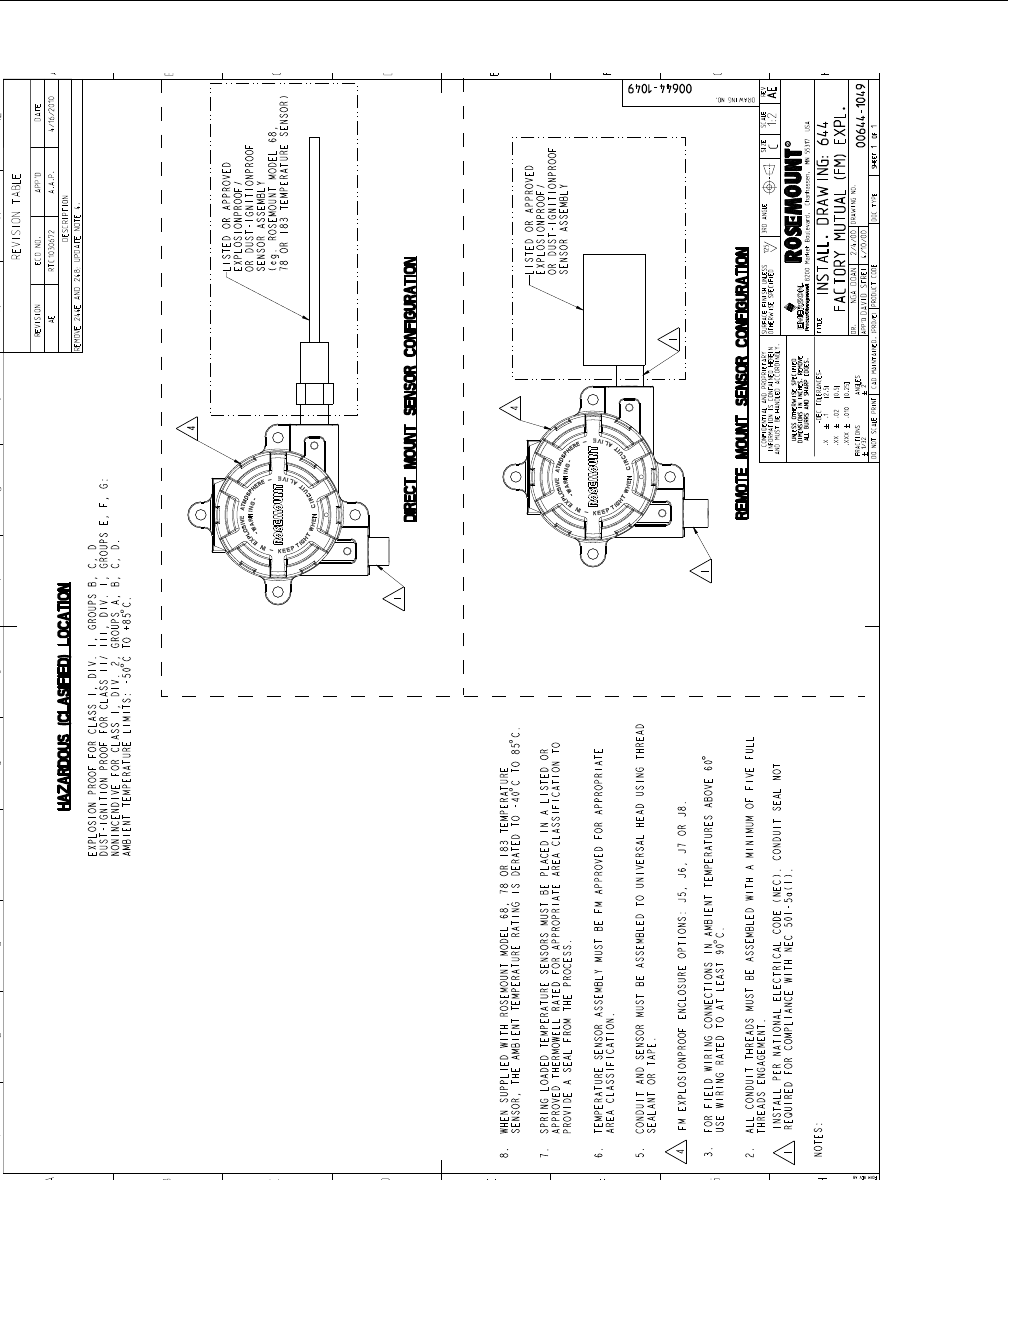 Emerson 644 Users Manual